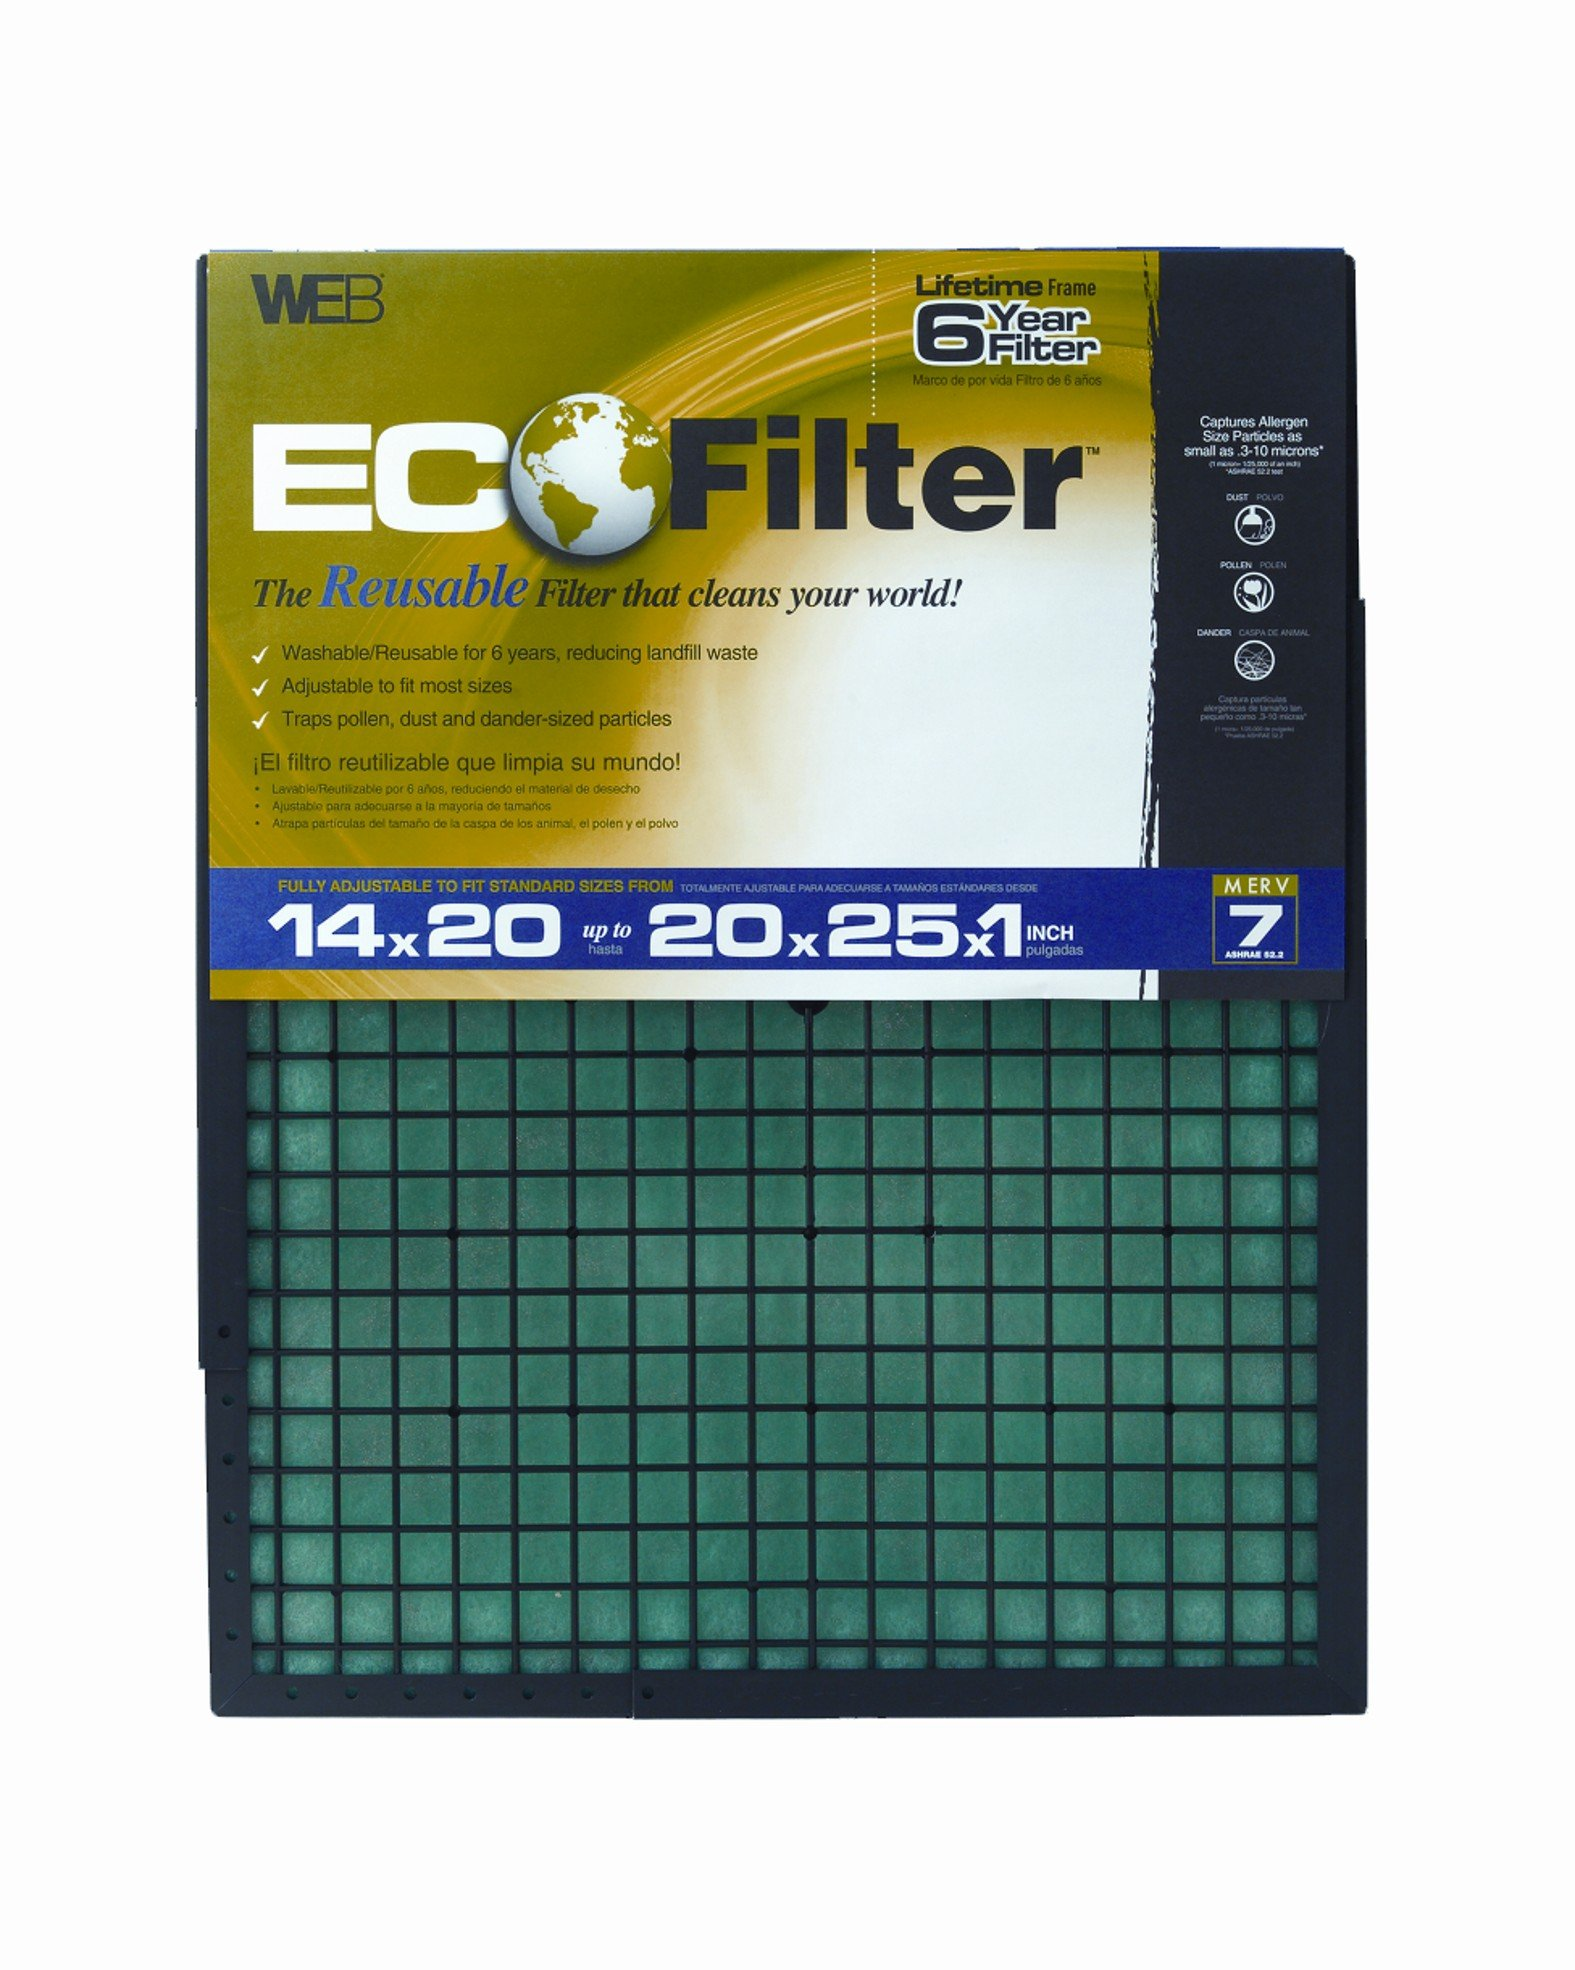 WEB Eco Filter Adjustable, 6 Year